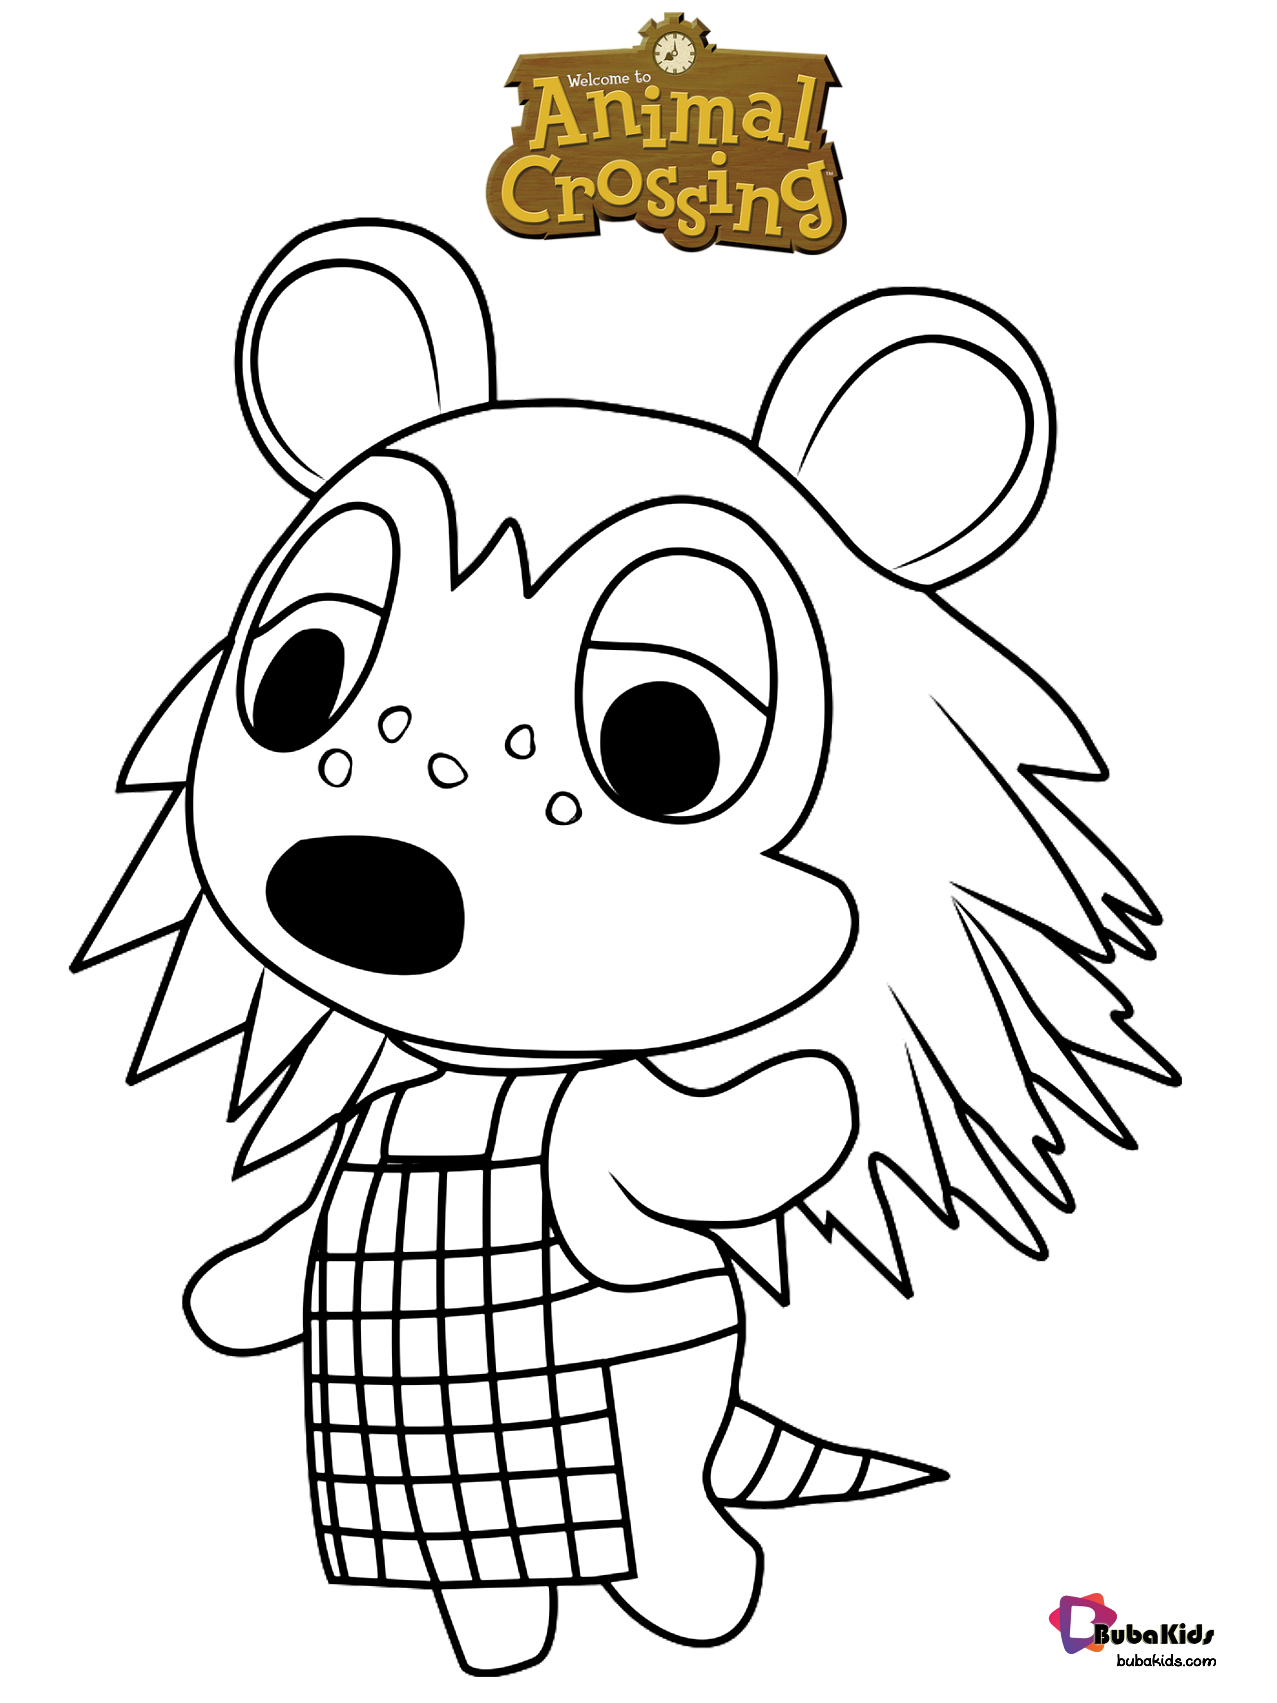 Free Download To Print Sable Animal Crossing Coloring Page For Kids Collection Of Cartoon Color In 2020 Animal Crossing Fan Art Animal Crossing Animal Coloring Pages